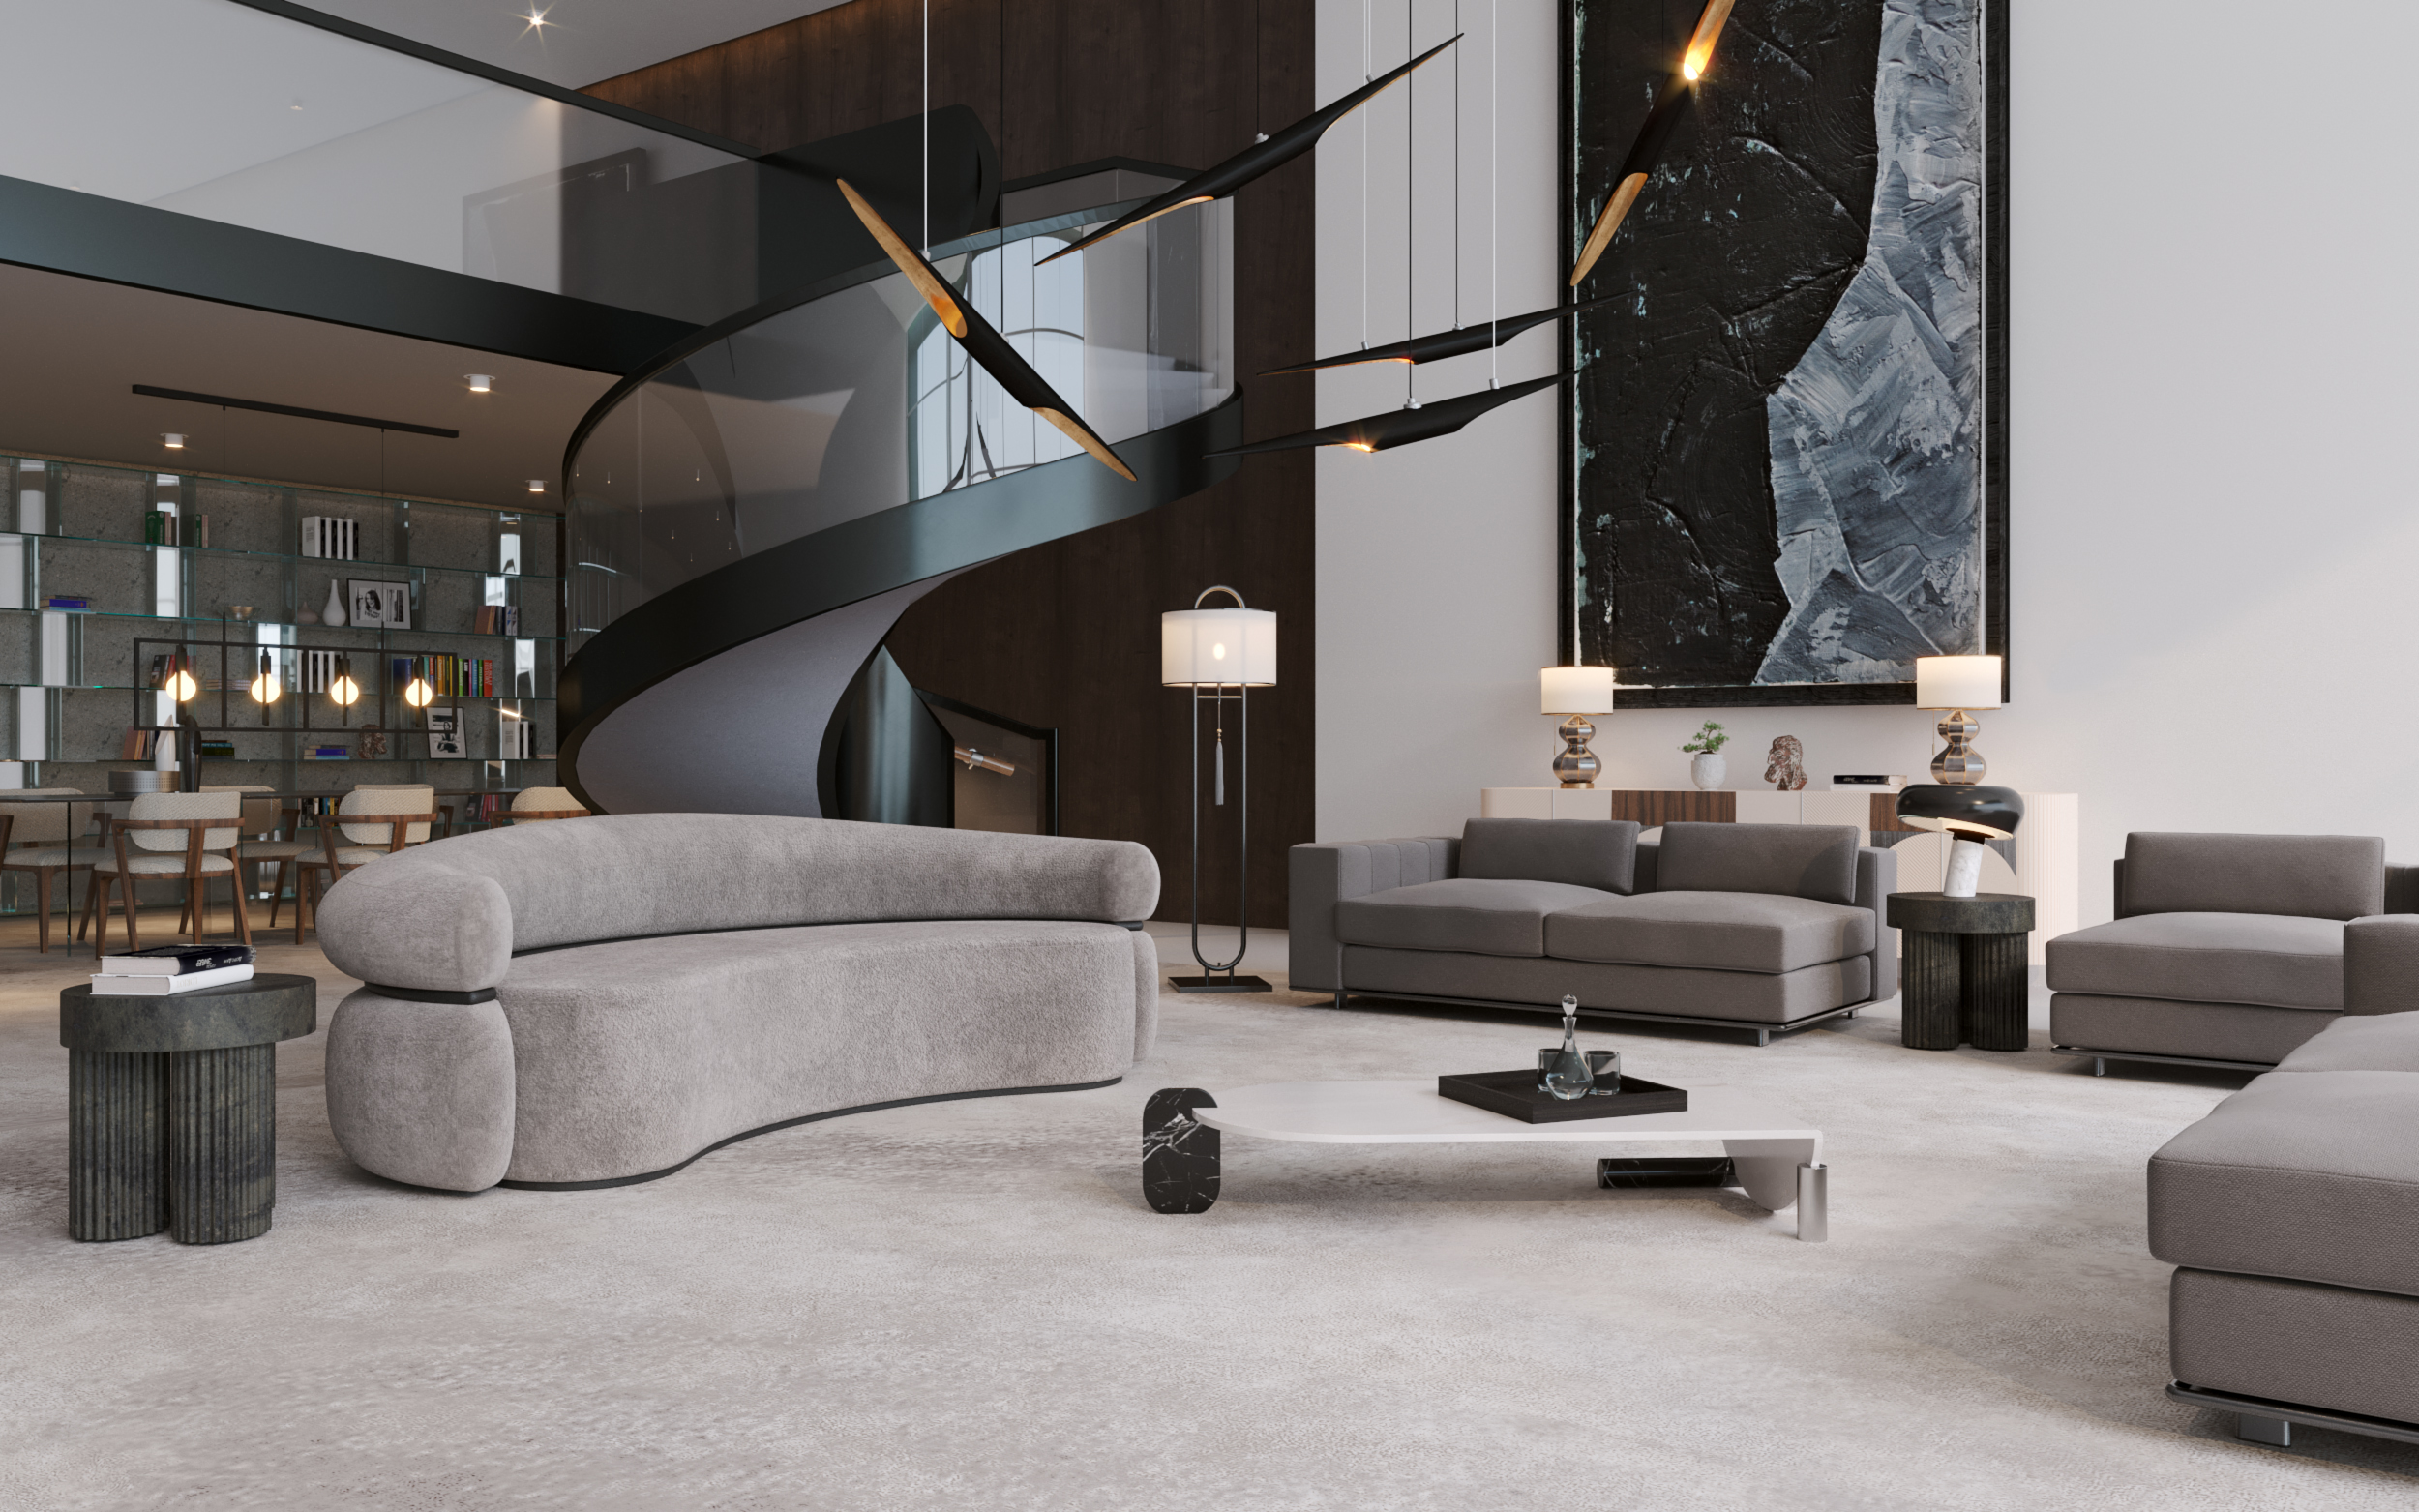 3D-visuals-trends-for-2021-2022-interior-and-exterior-spaces38